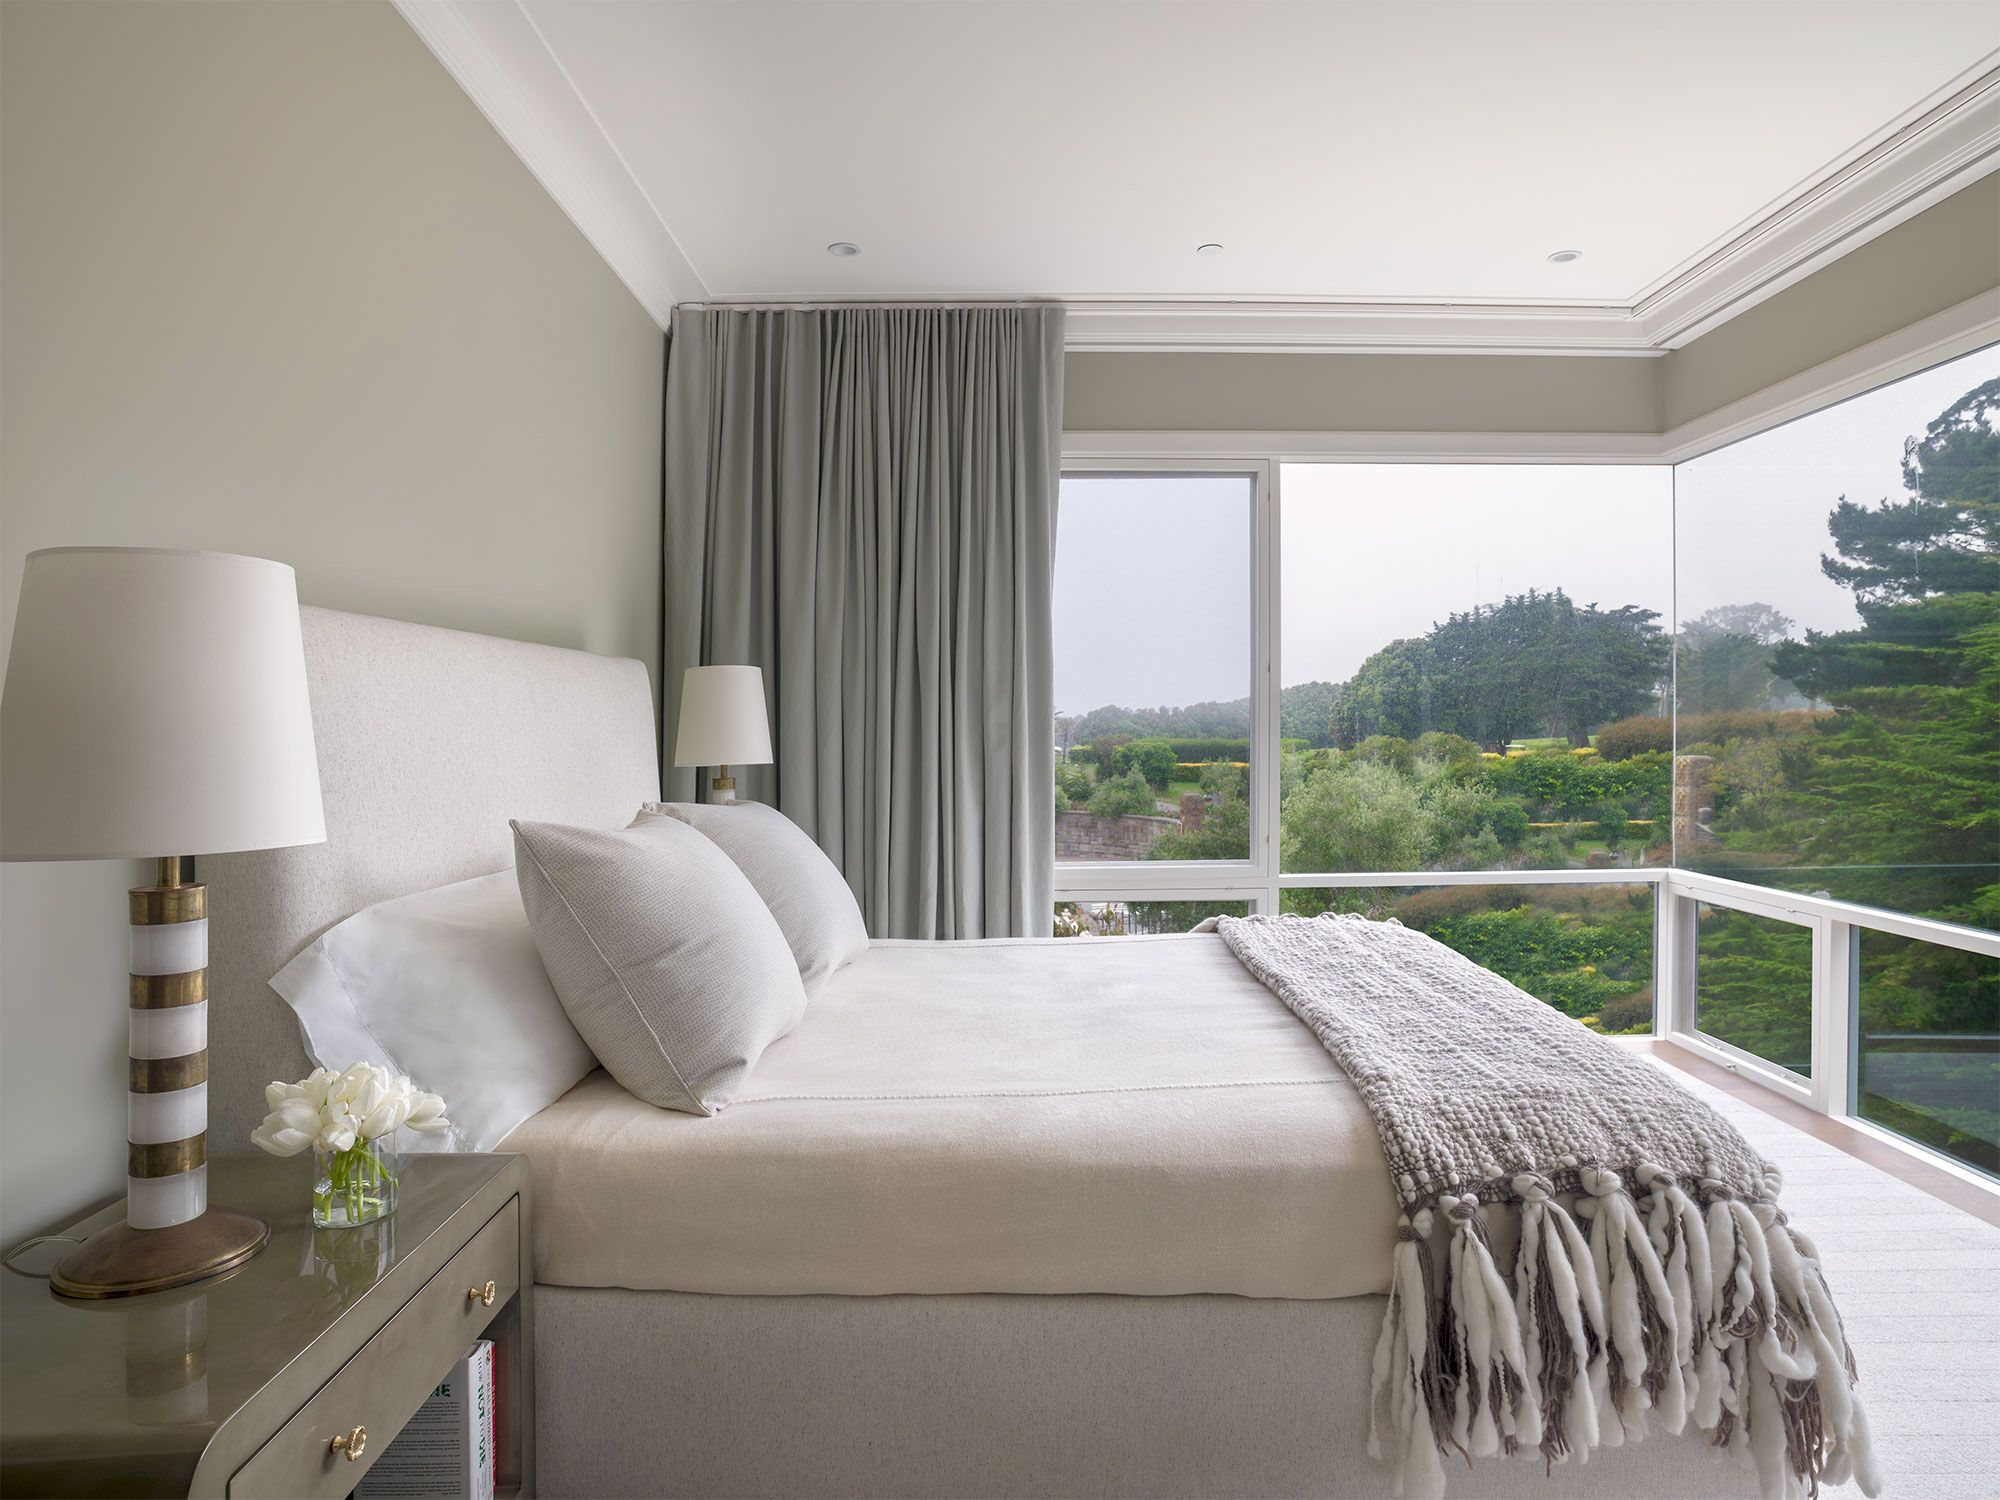 23 Beautiful White Bedrooms - Ideas for White Bedroom Design